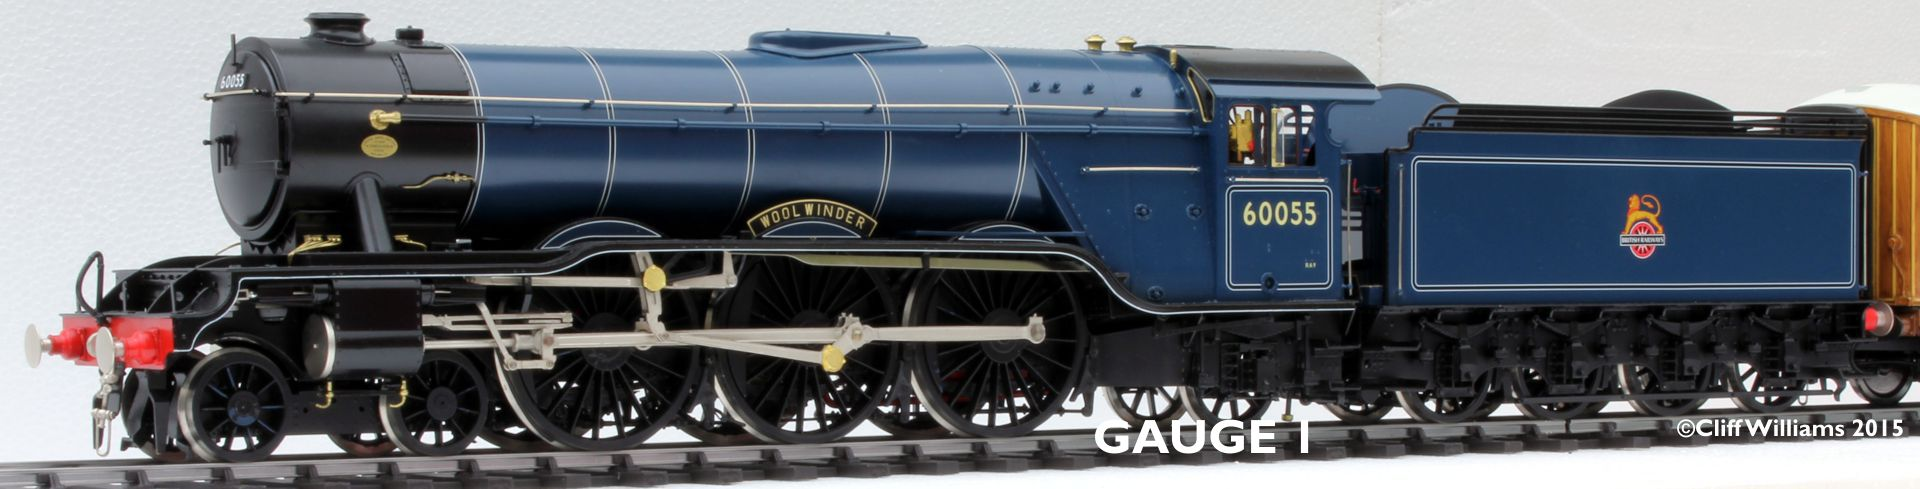 Our fabulous Gauge One models direct from our studio in